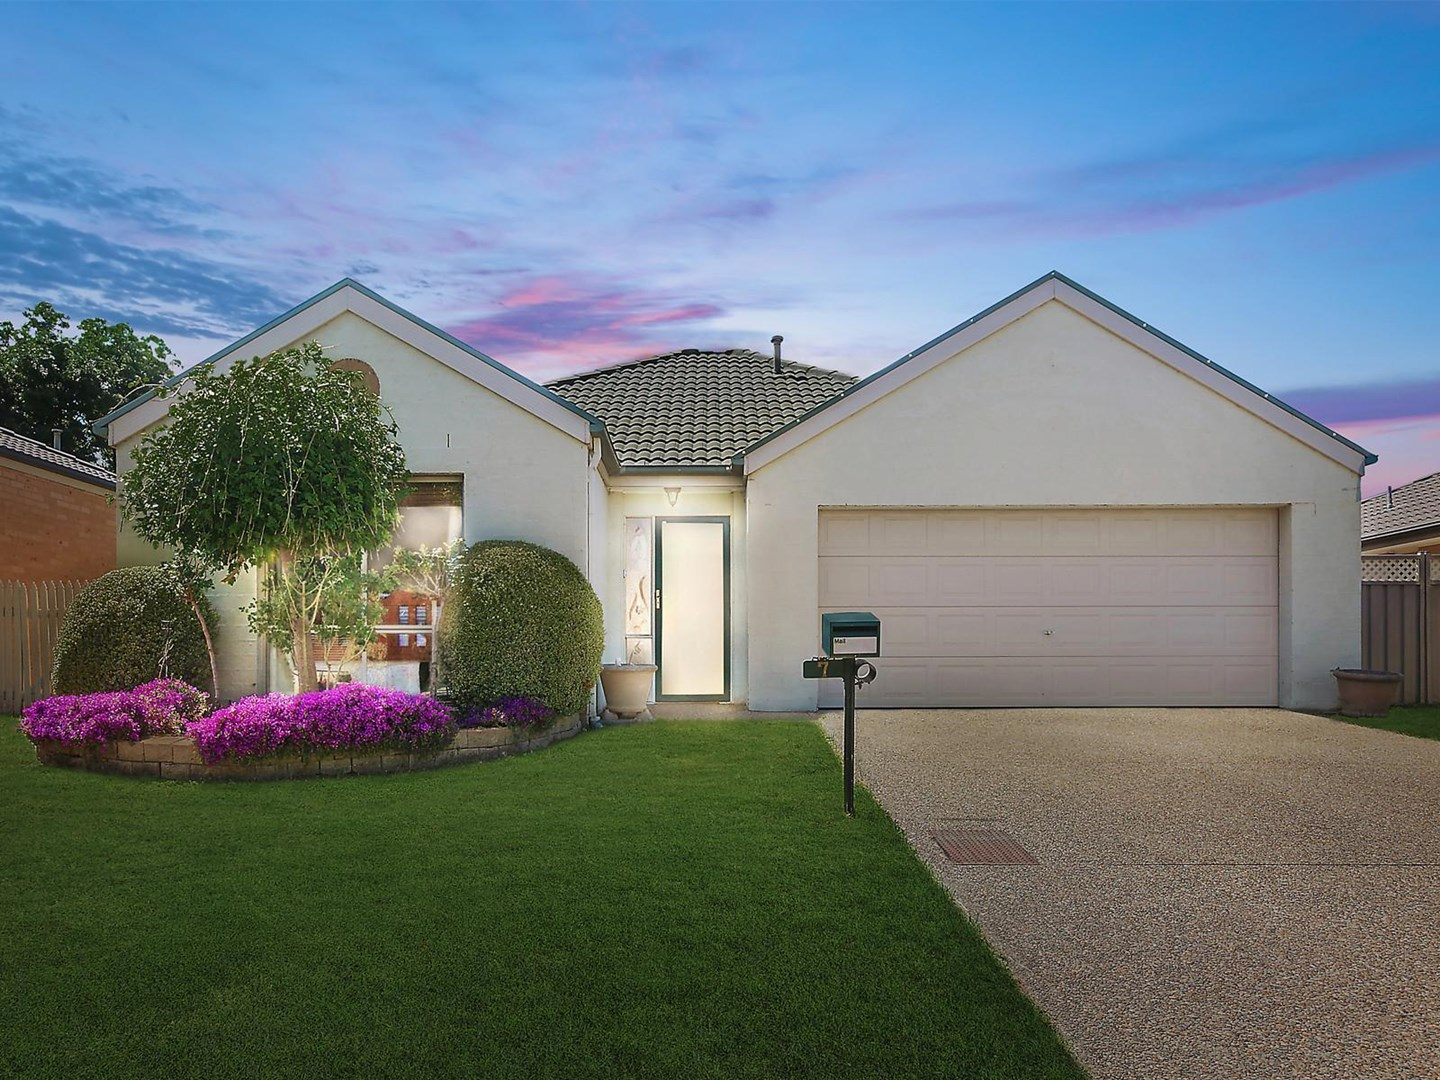 For Sale, price  guide over $639,000 (under offer)